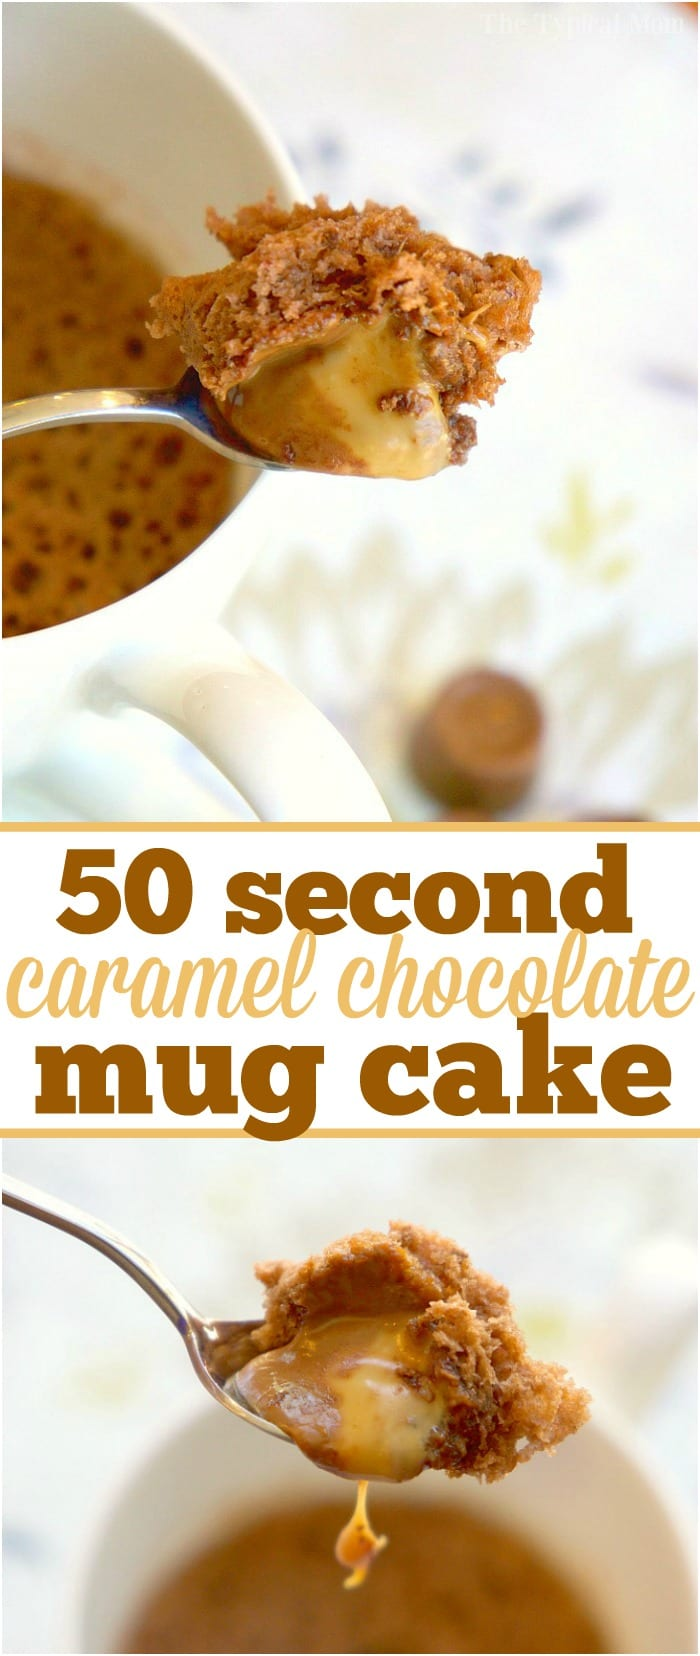 The most amazing caramel chocolate mug cake recipe you will ever try that only takes 50 seconds to cook in your microwave. Just three ingredients to make the cake and when you press a caramel inside it's the perfect treat made just for one person. I make these at night when I have a sweet tooth!  #mug #cake #chocolate #caramel #angelfoodcake #minute #microwave